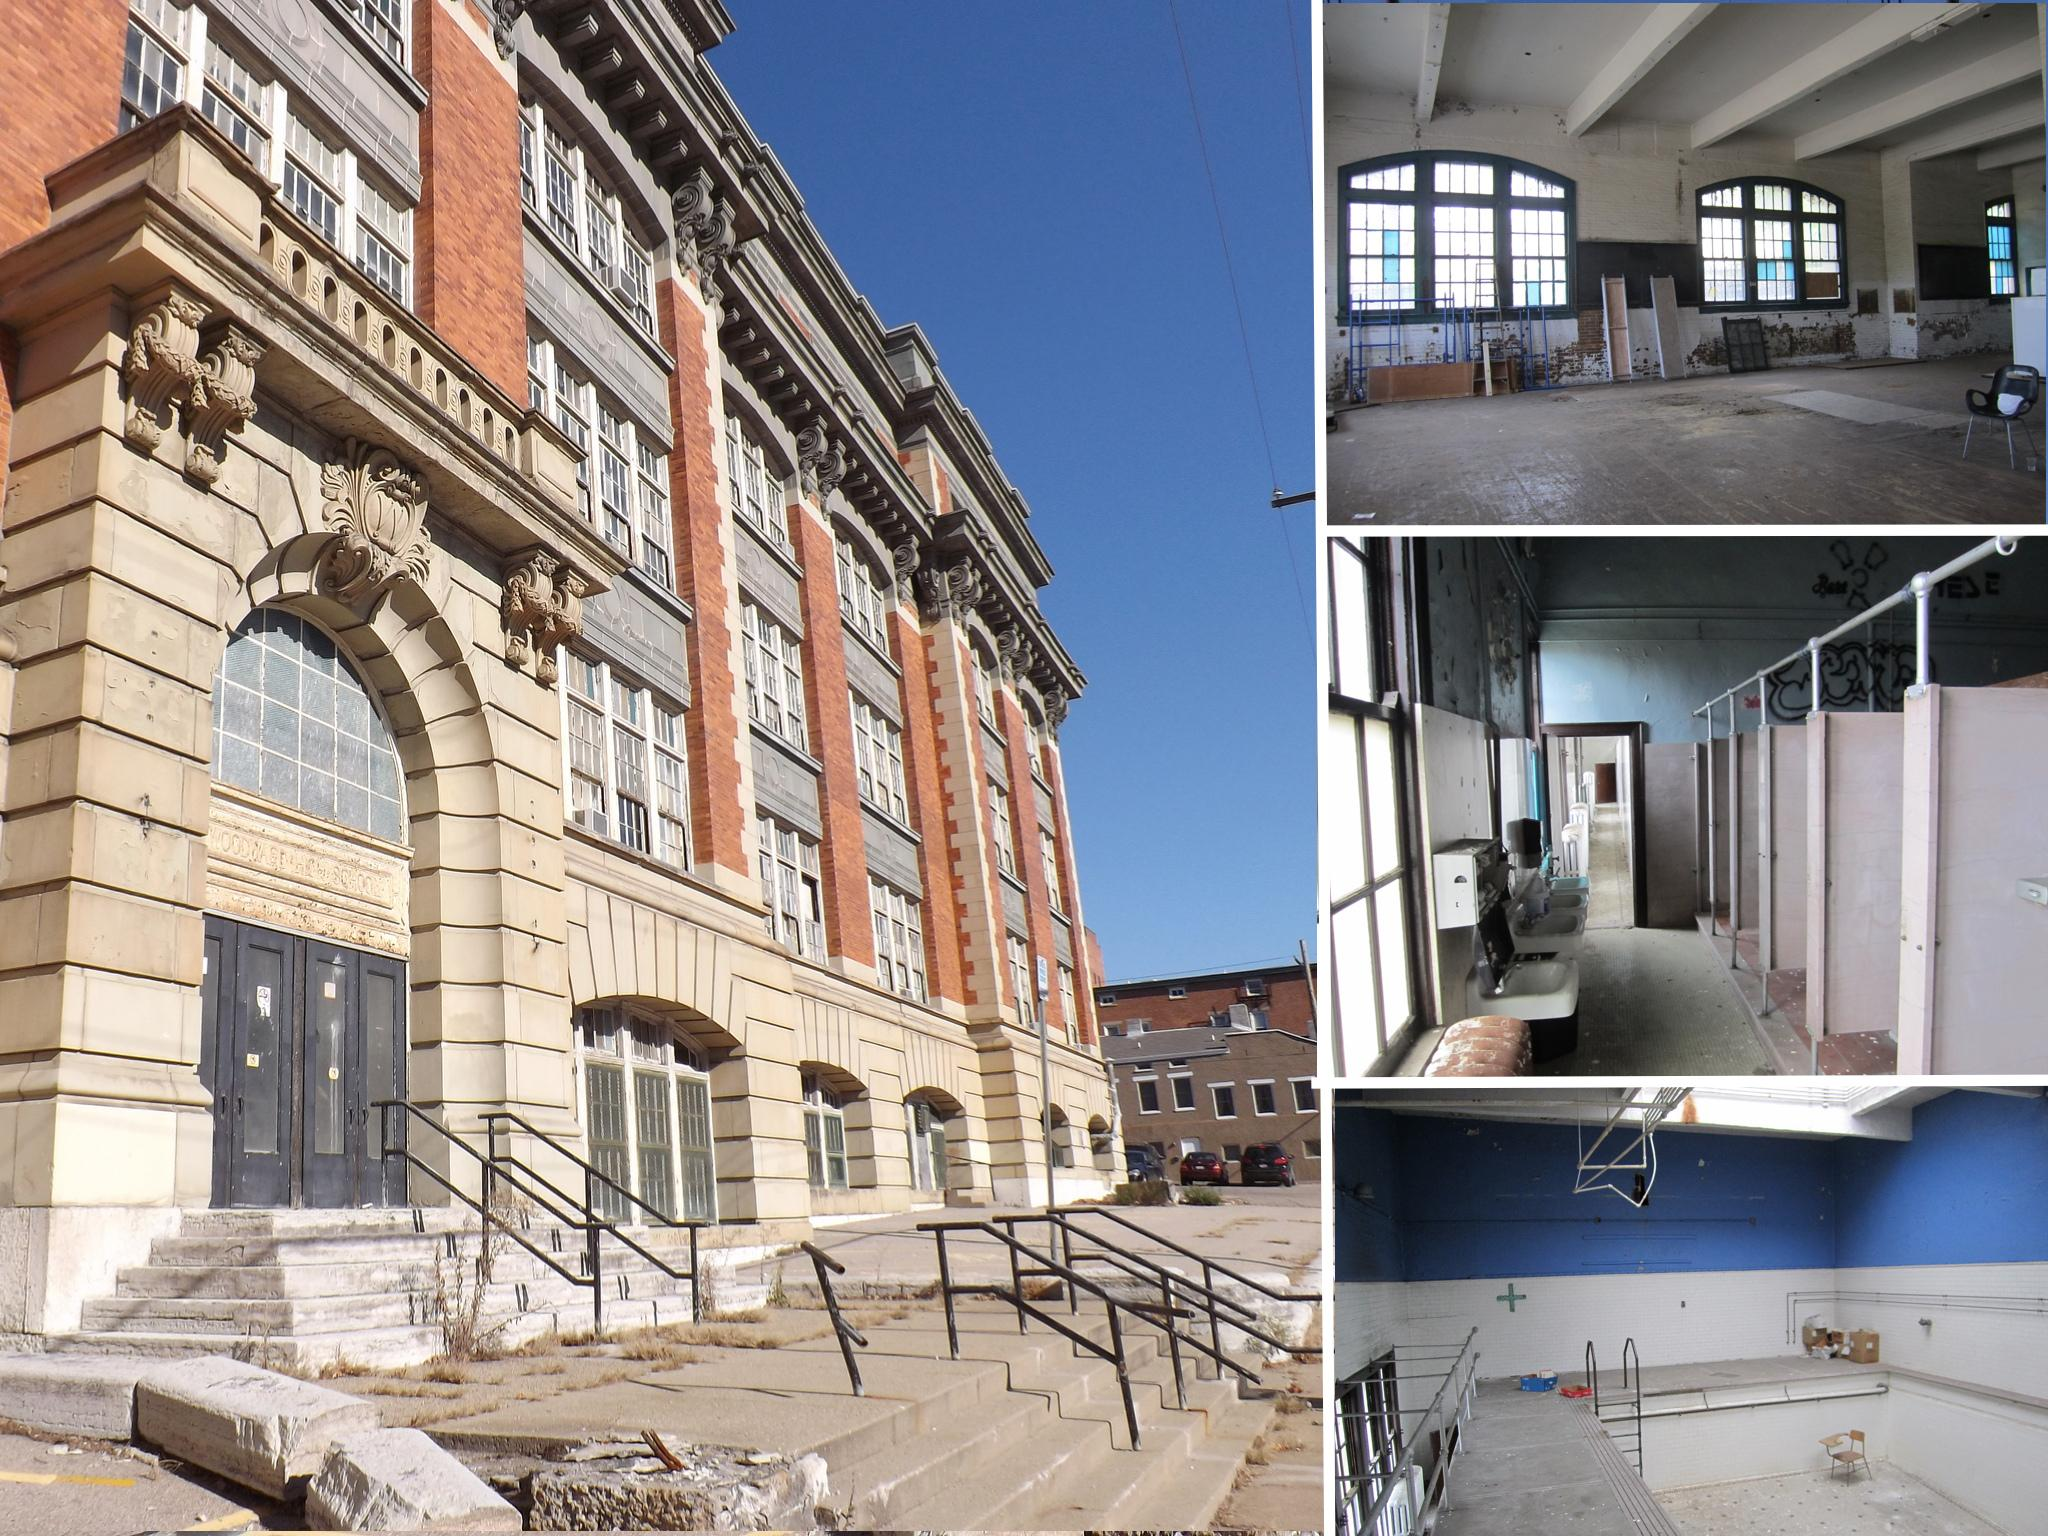 ALUMNI LOFTS (Before) / ADDRESS: 1310 Sycamore Street (45202) / CREDIT: $5,000,000 / PREVIOUSLY: School for Creative & Performing Arts, and before that, Woodward High School / Images courtesy of the Ohio Department of Taxation, CC by 2.0, with changes // Published: 5.20.17